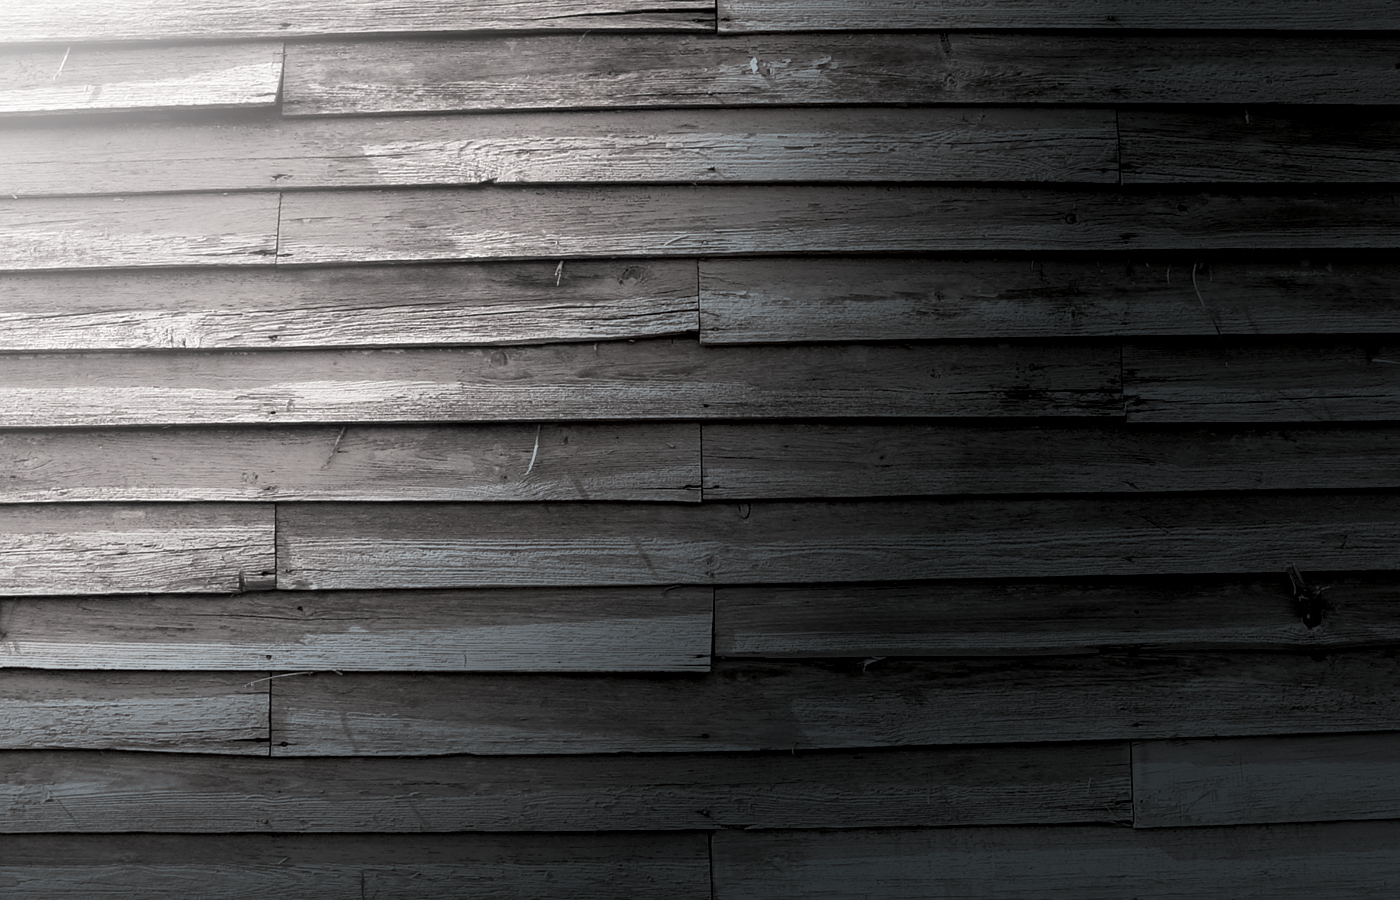 Vintage wood wallpaper vintage wood wallpaper for android backgrounds - Techcredo Wood Texture Wallpaper Collection For Android